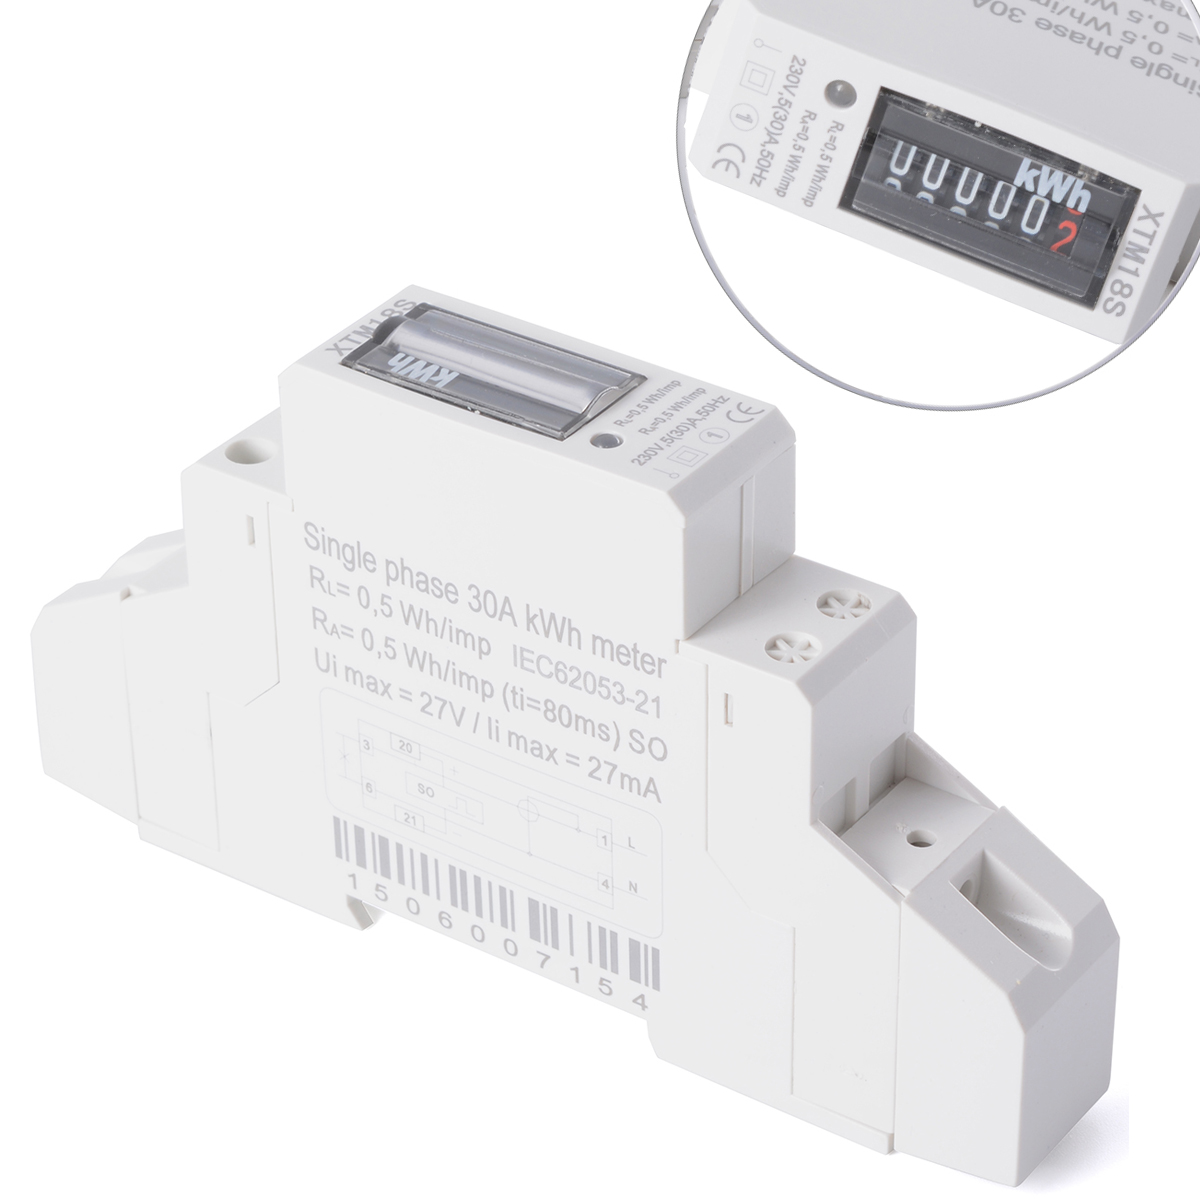 hot 50hz 5 30 a kwh meter din rail mounted single phase power meter bi041 ebay. Black Bedroom Furniture Sets. Home Design Ideas